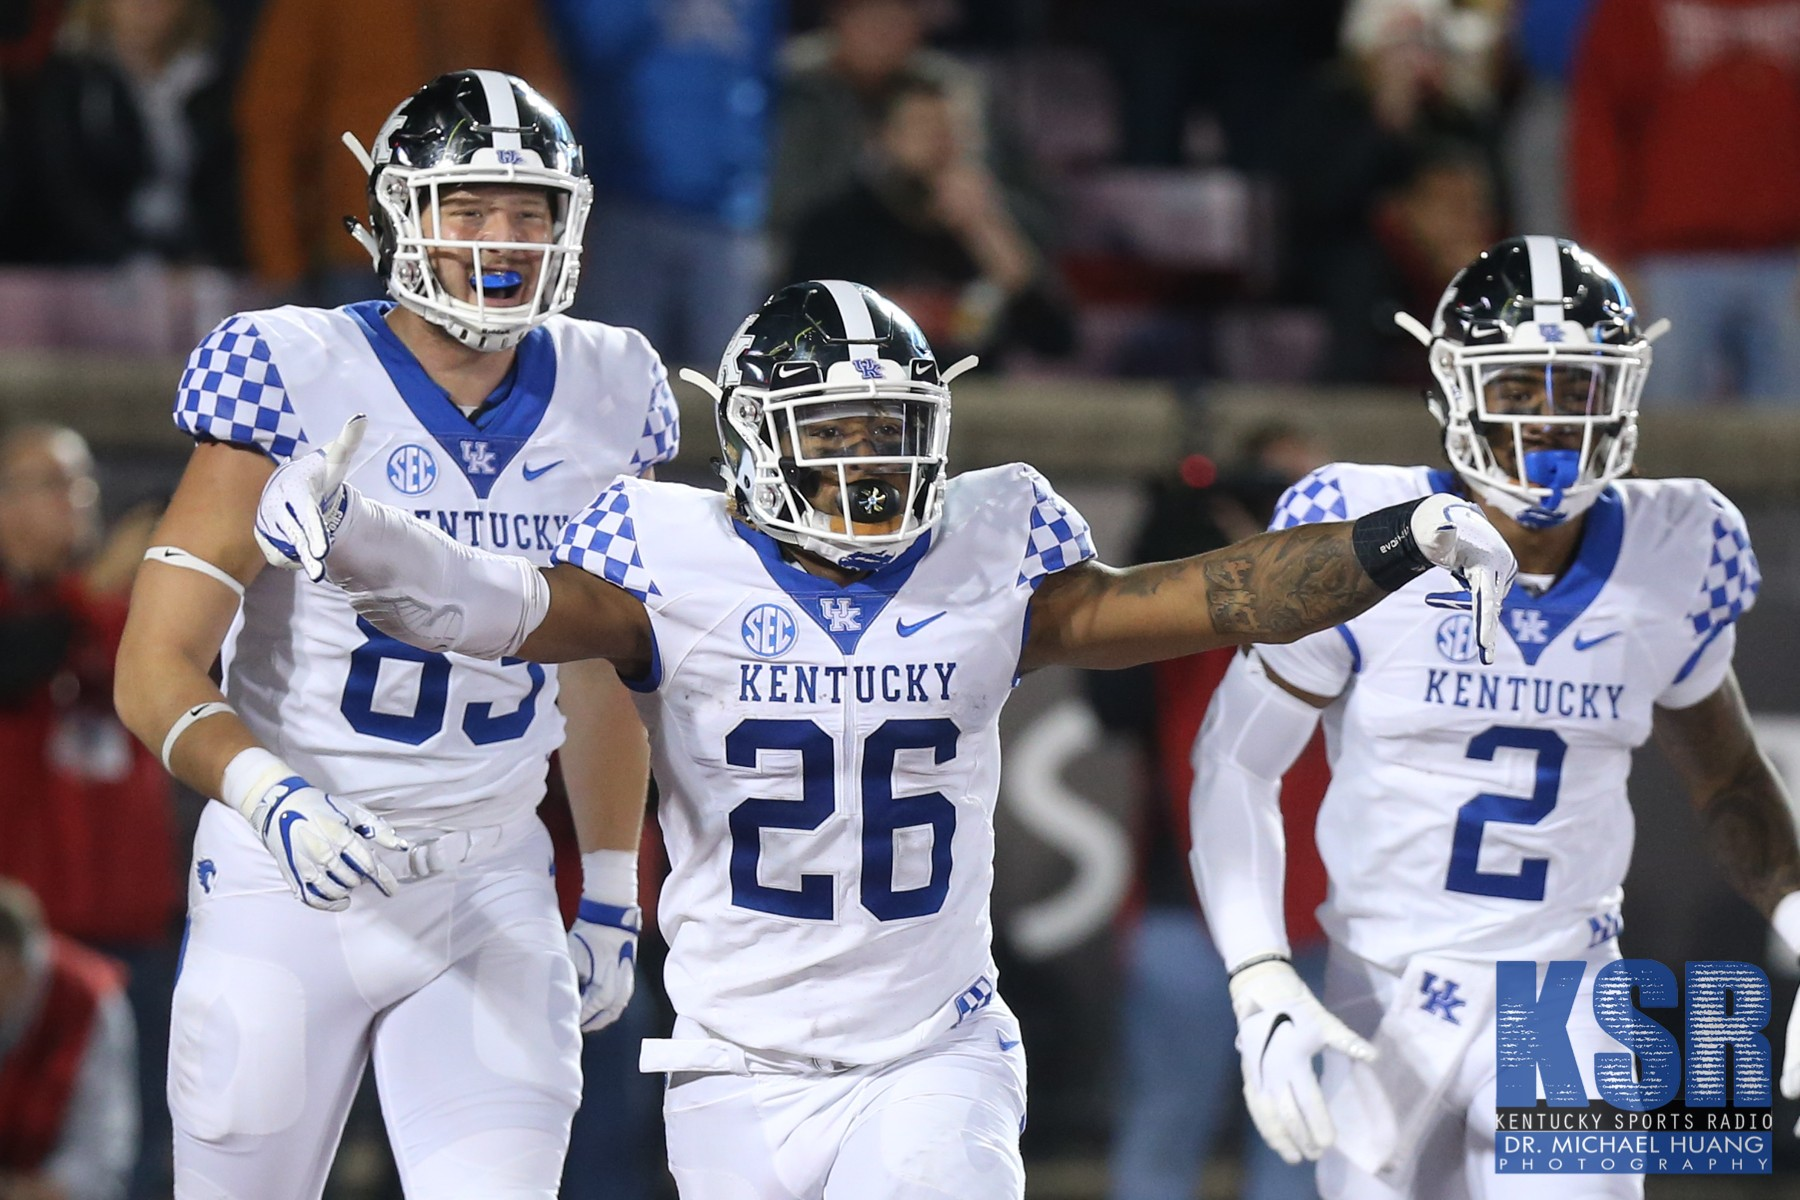 67125219df1 Kentucky s latest uniform combination named one of nation s best